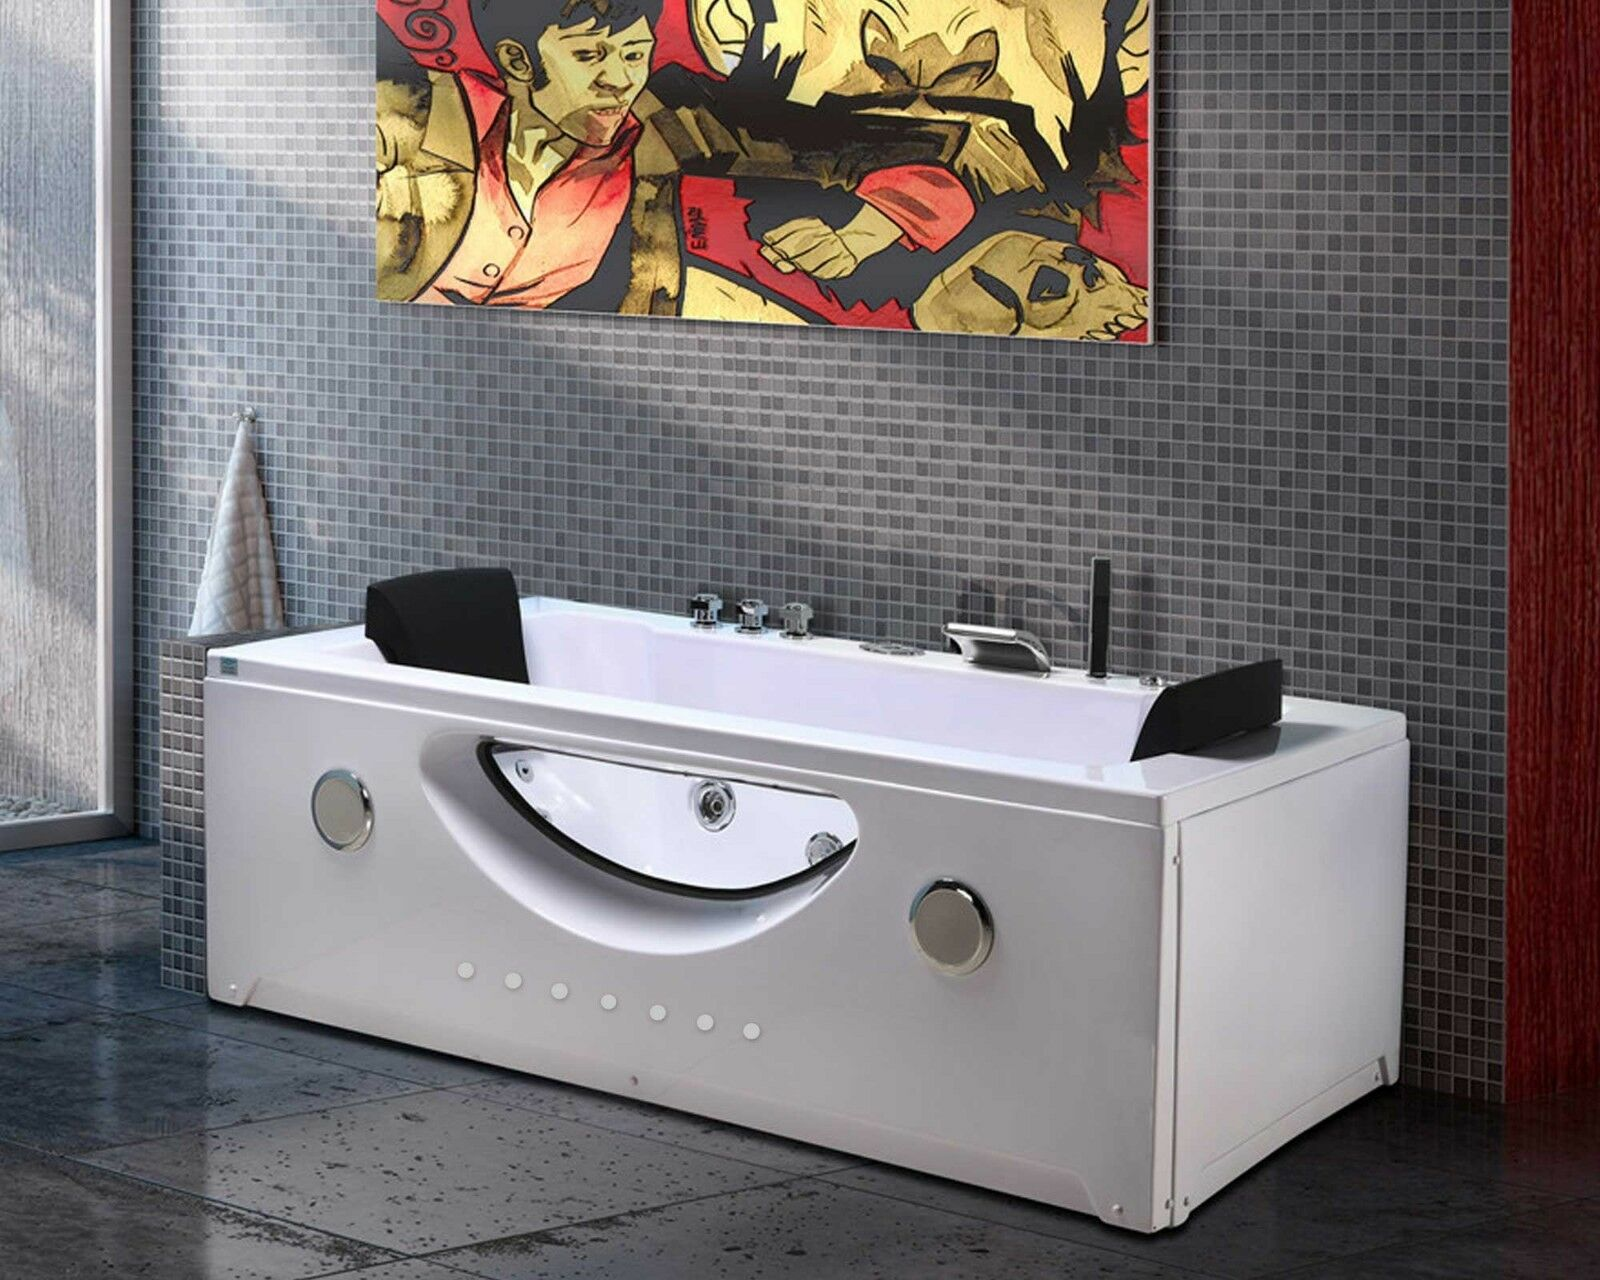 whirlpool massage hydrotherapy bathtub hot tub 2